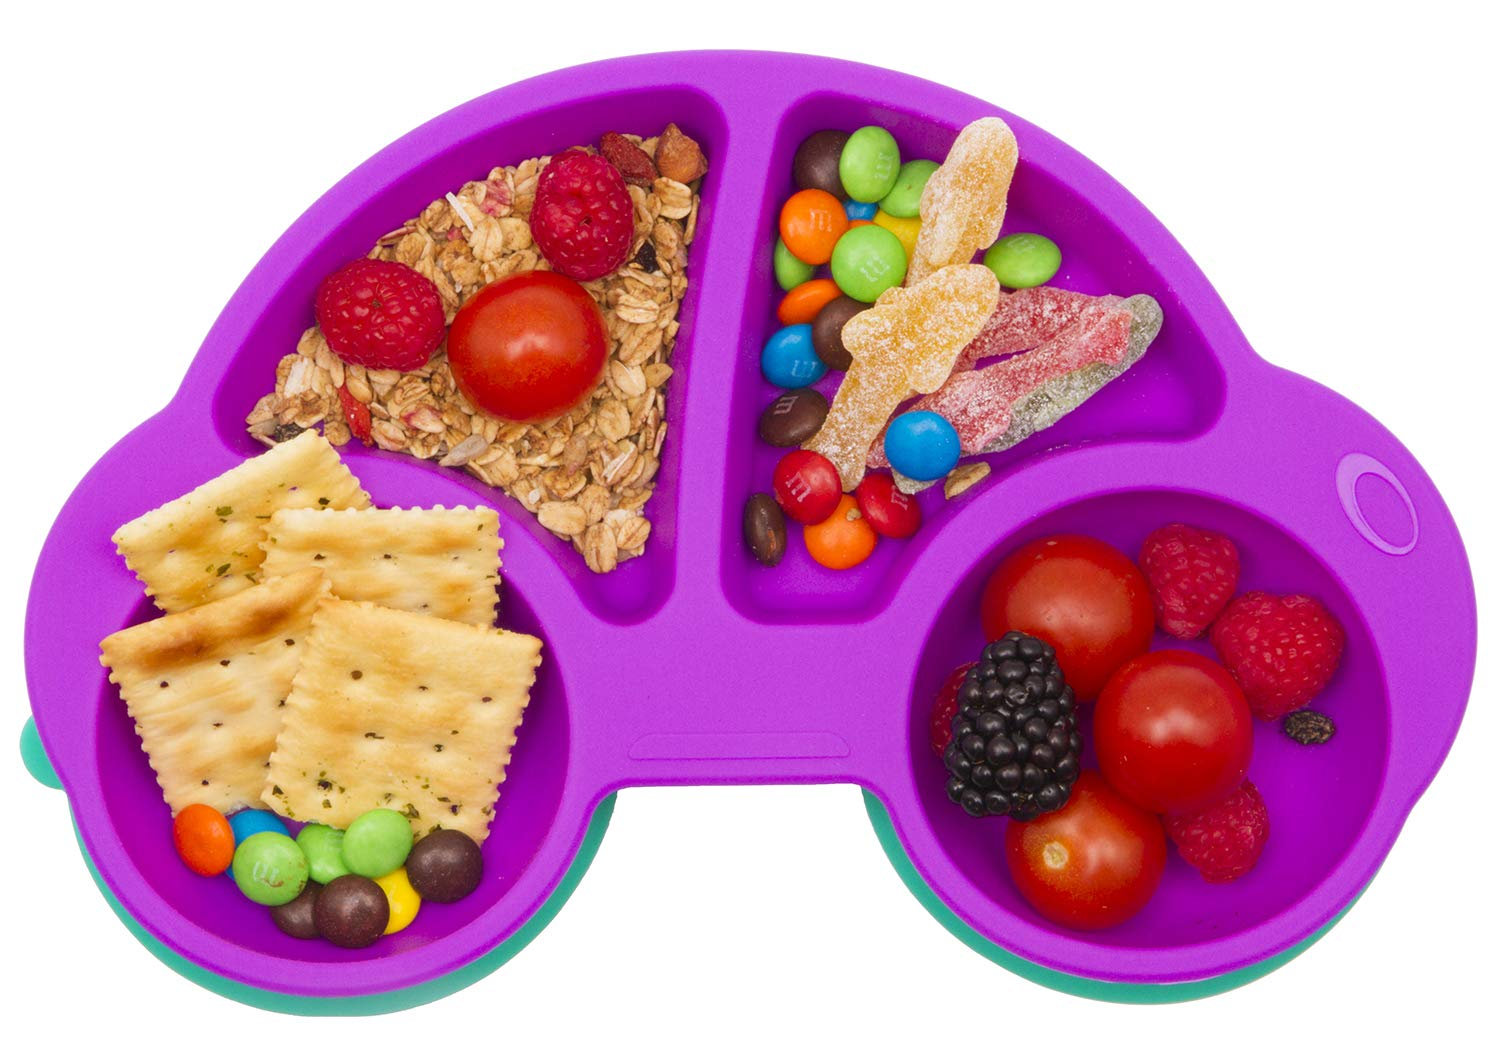 Silicone Divided Toddler Plates - Portable Non Slip Suction Plates for Children Babies and Kids BPA Free FDA Approved Baby Dinner Plate (New Car-Purple) by Novos